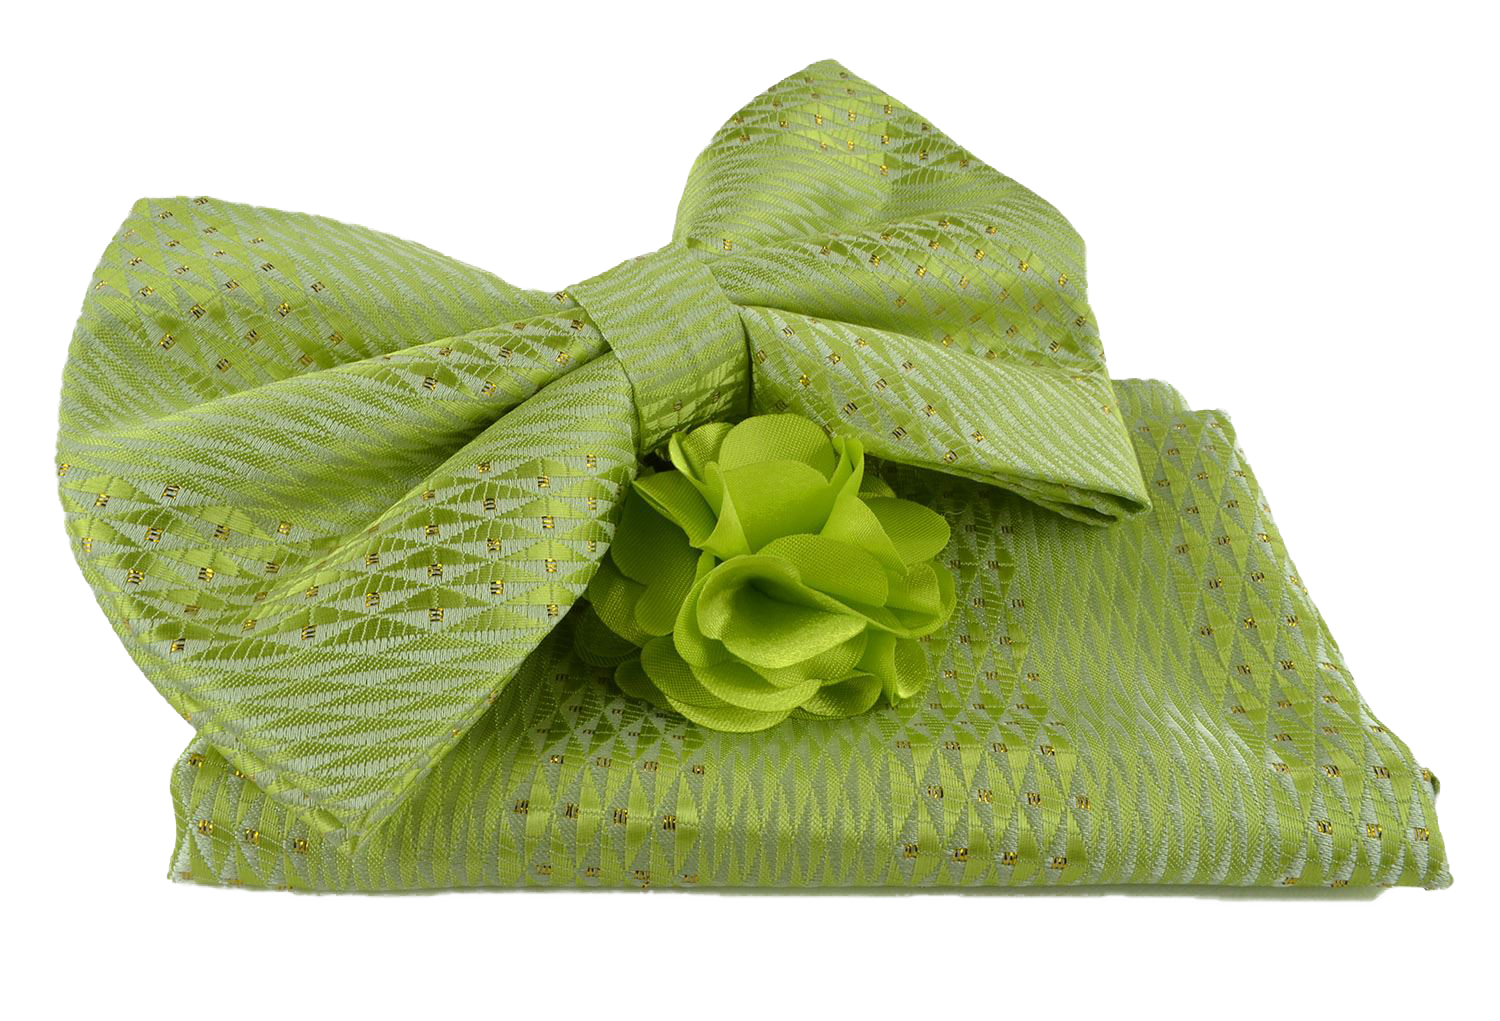 Uomo Vennetto Men's Green Woven Bow Tie with Hanky and Lapel Flower